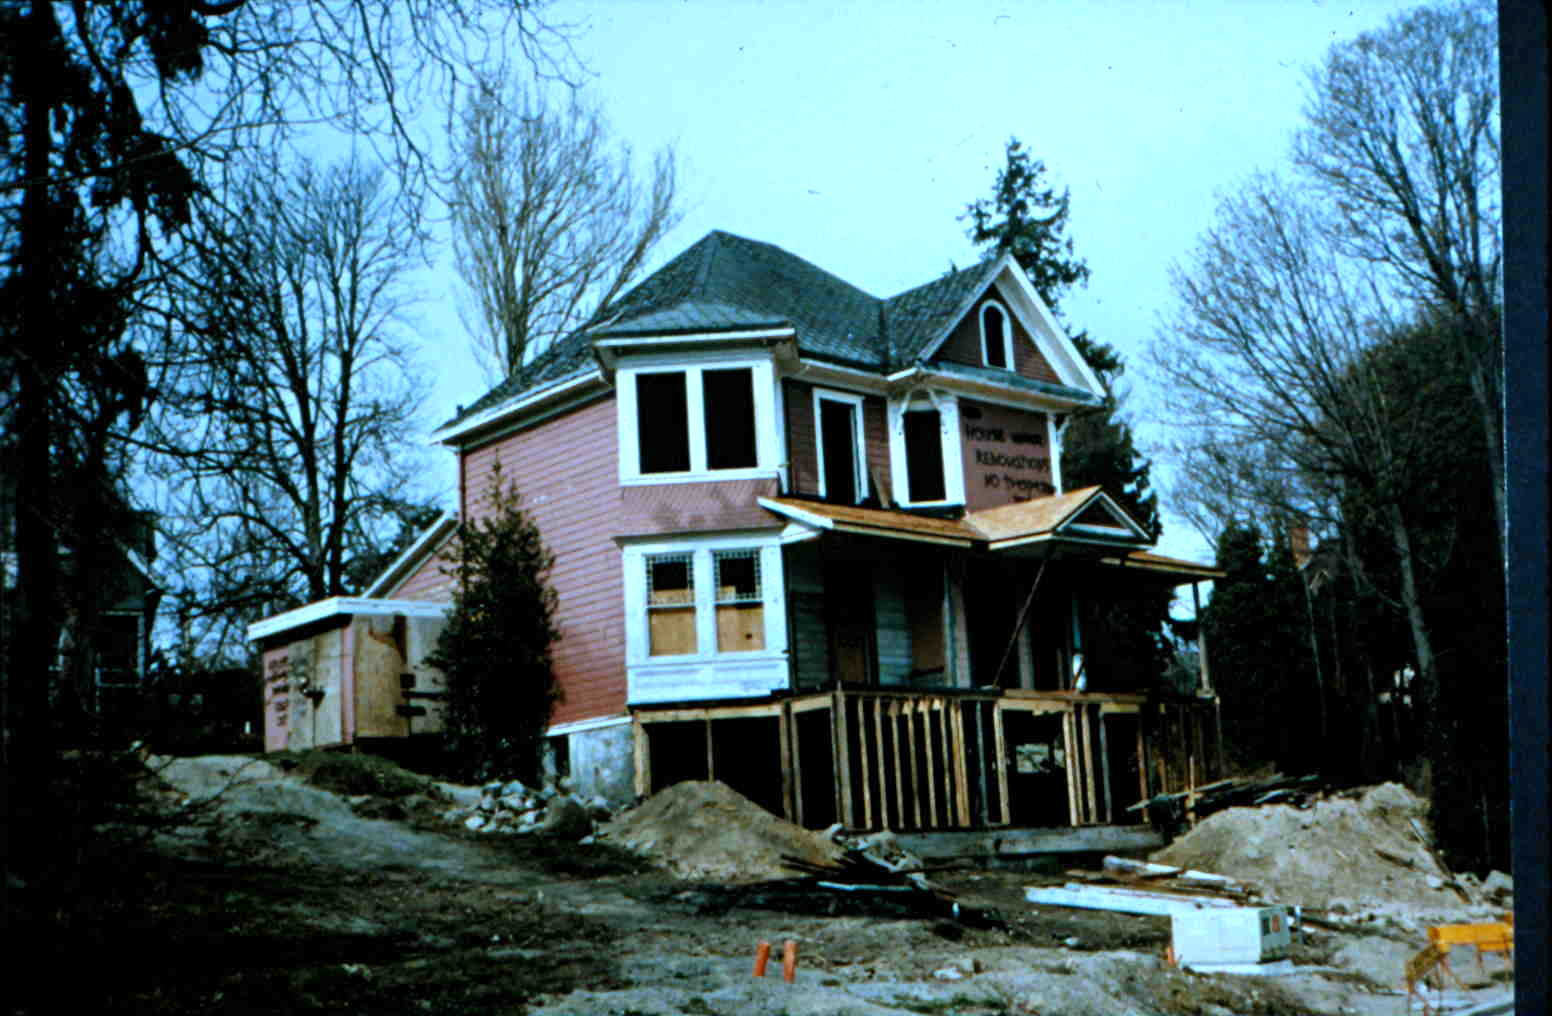 1140 Arthur Currie Lane verandahs being built